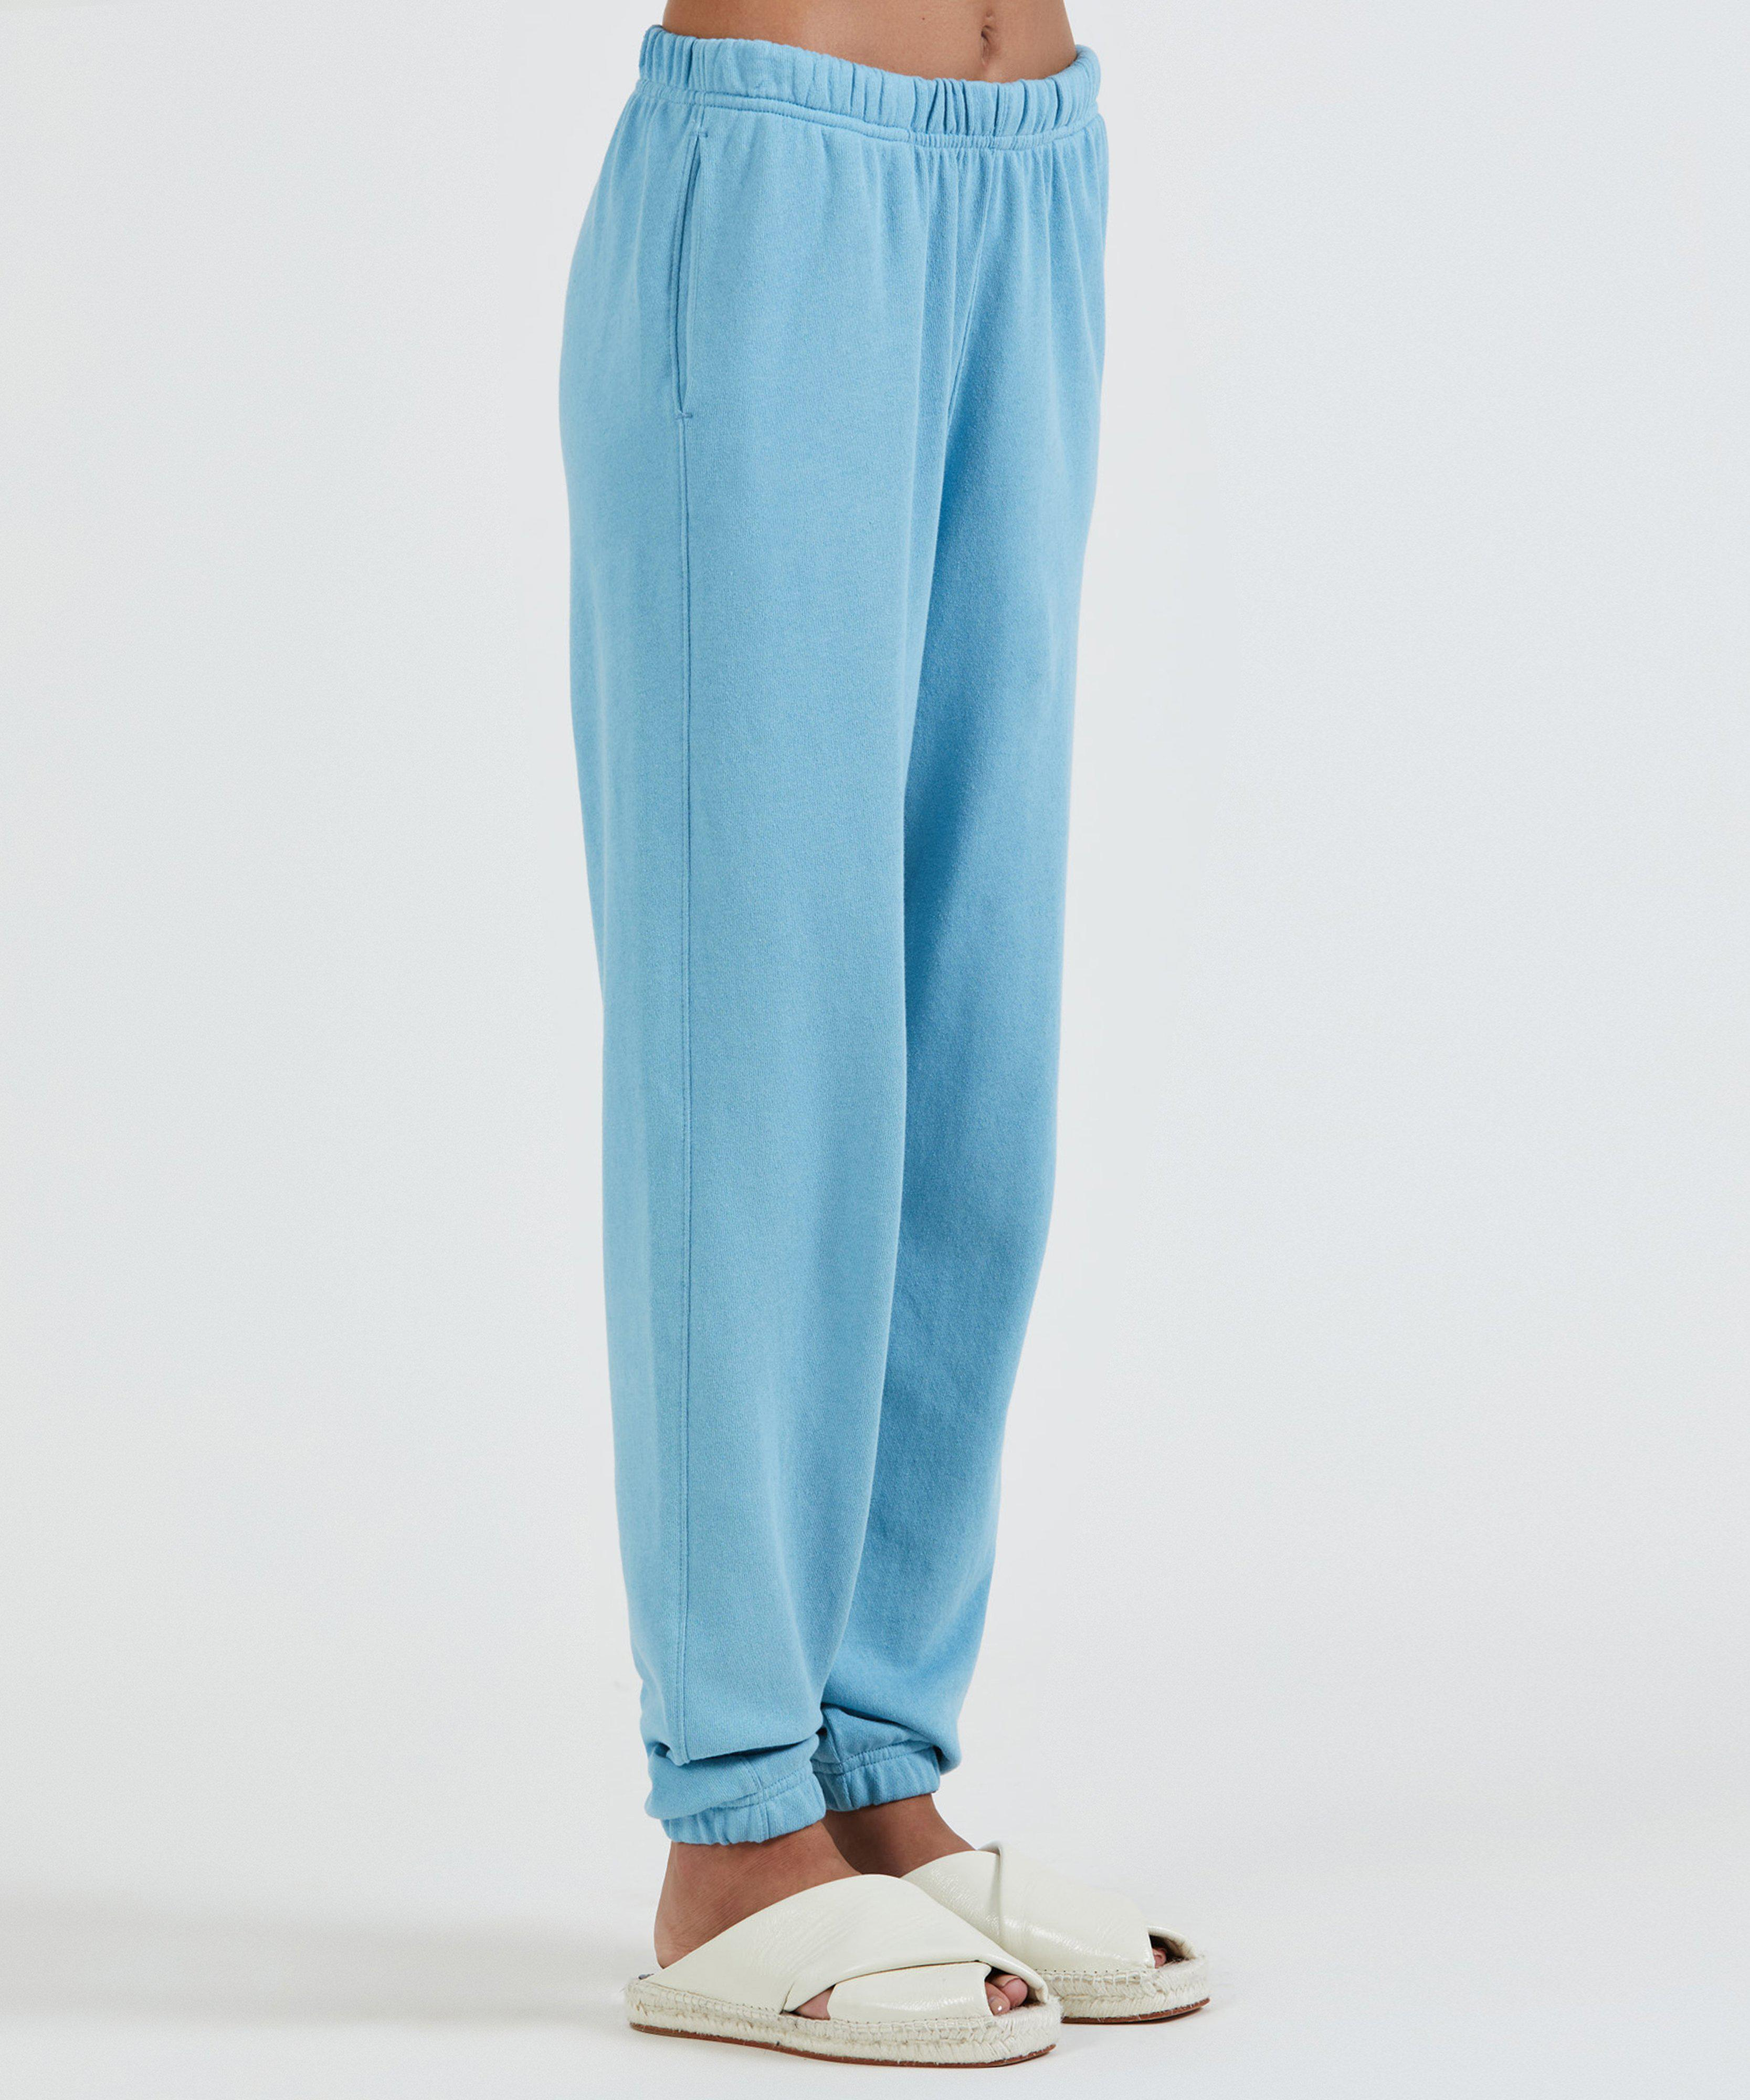 French Terry Pull-On Pant - Ocean Blue 1